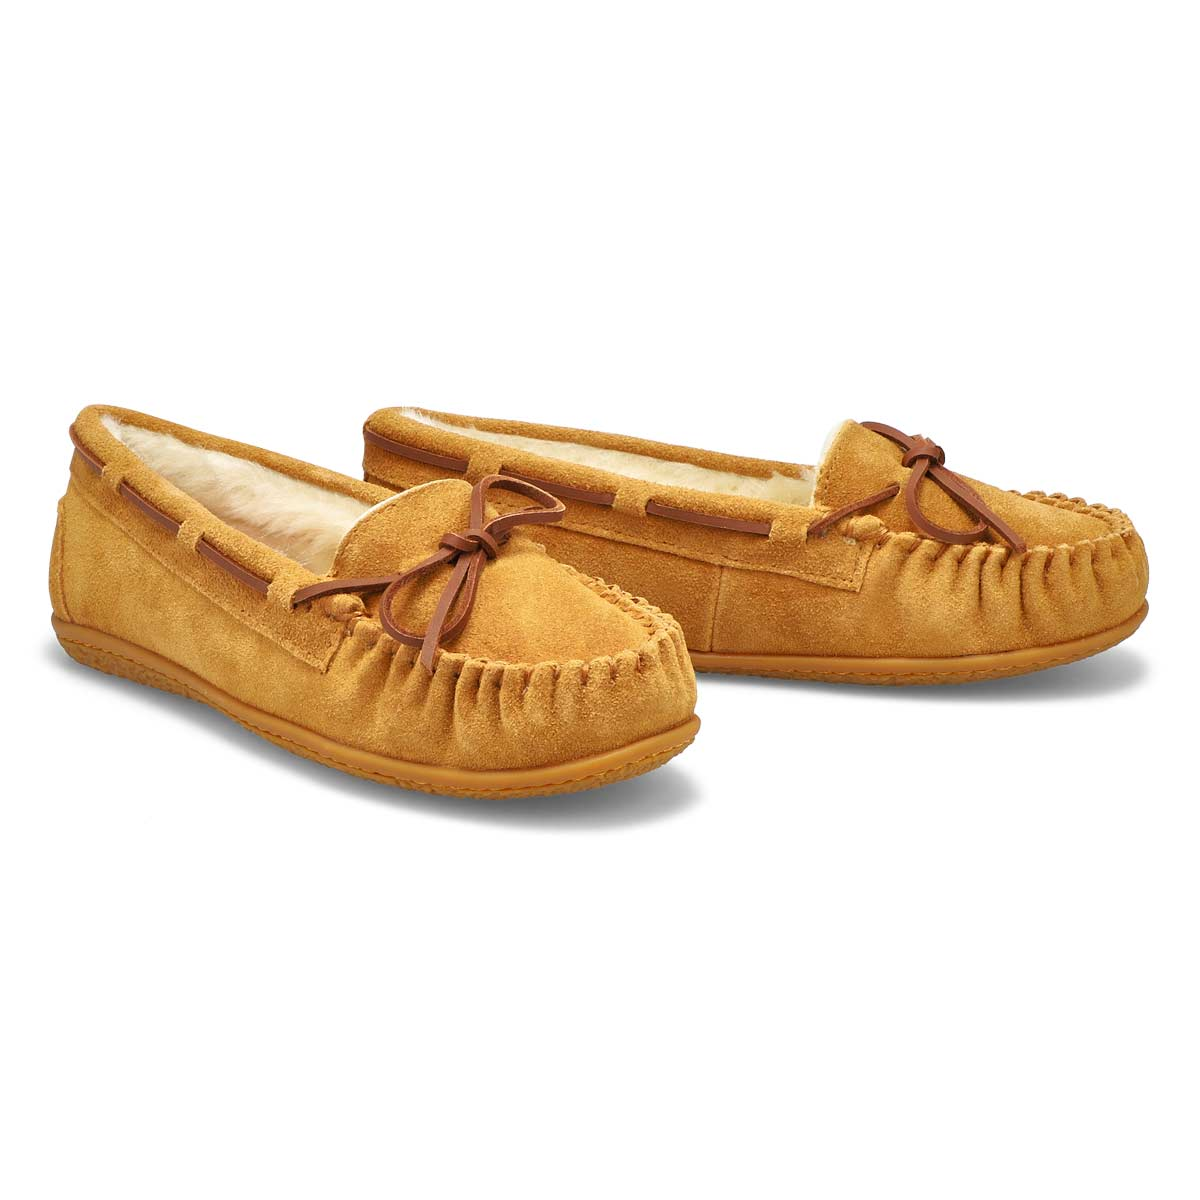 Lds BaliSupreme ches suede ballerina moc